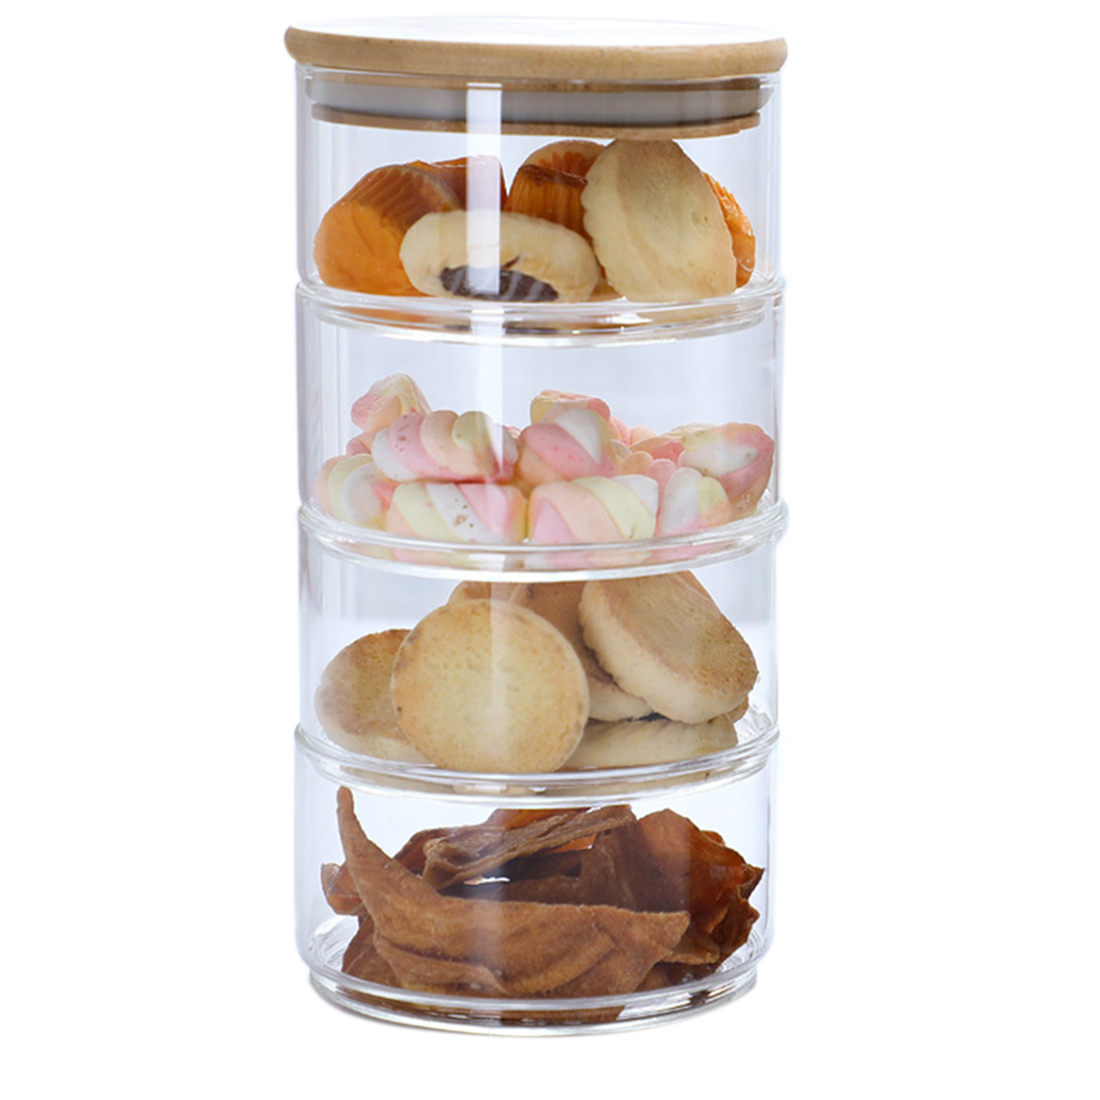 1/2/3/4-Tier Stackable Glass Apothecary Jar Kitchen Candy Cookie Storage Containers With Lid - Transparent